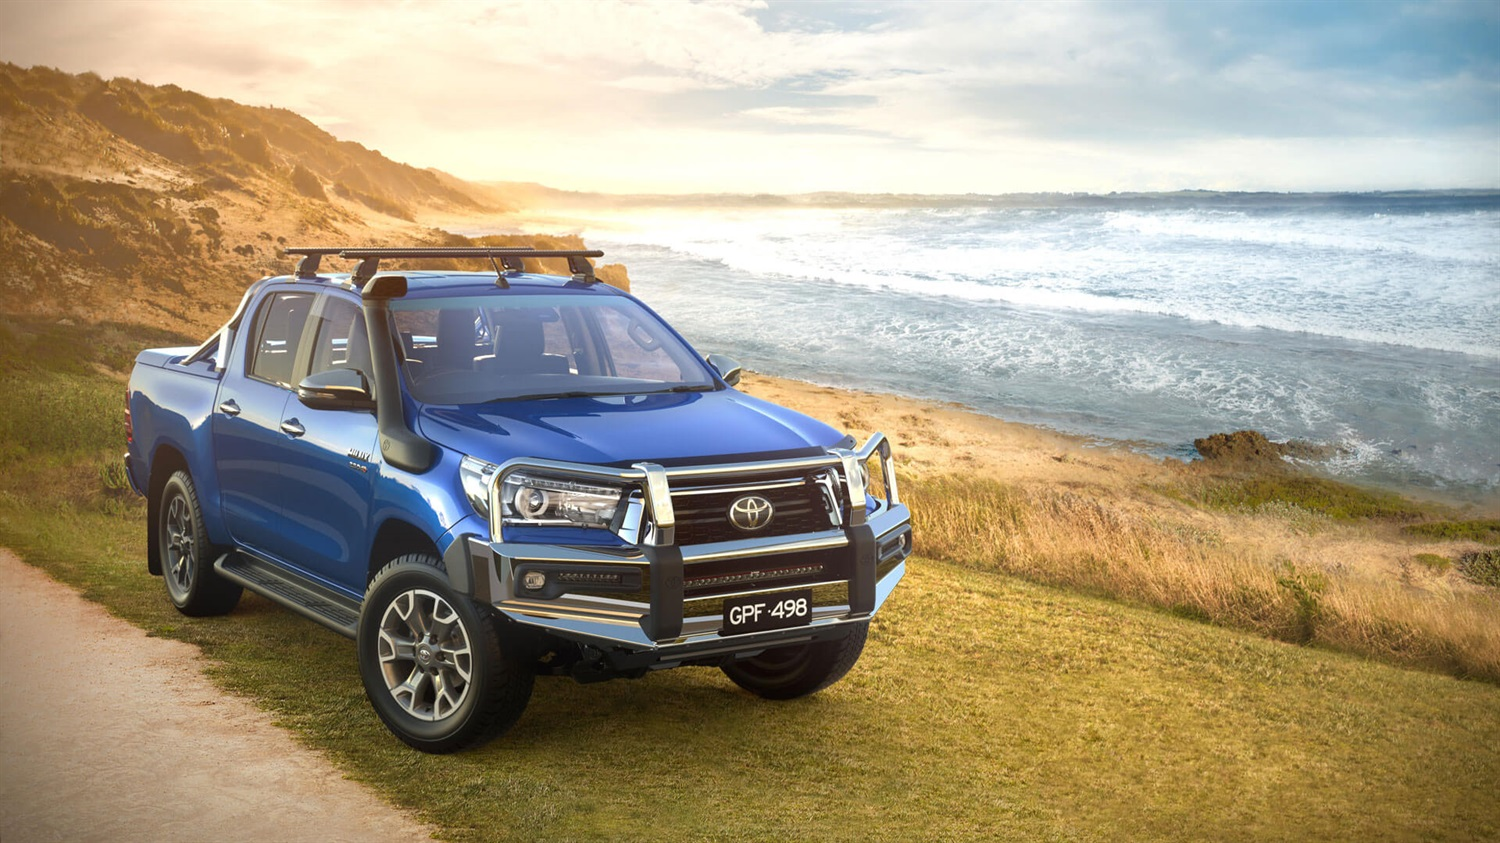 Learn About the Outstanding Features of Toyota Hilux